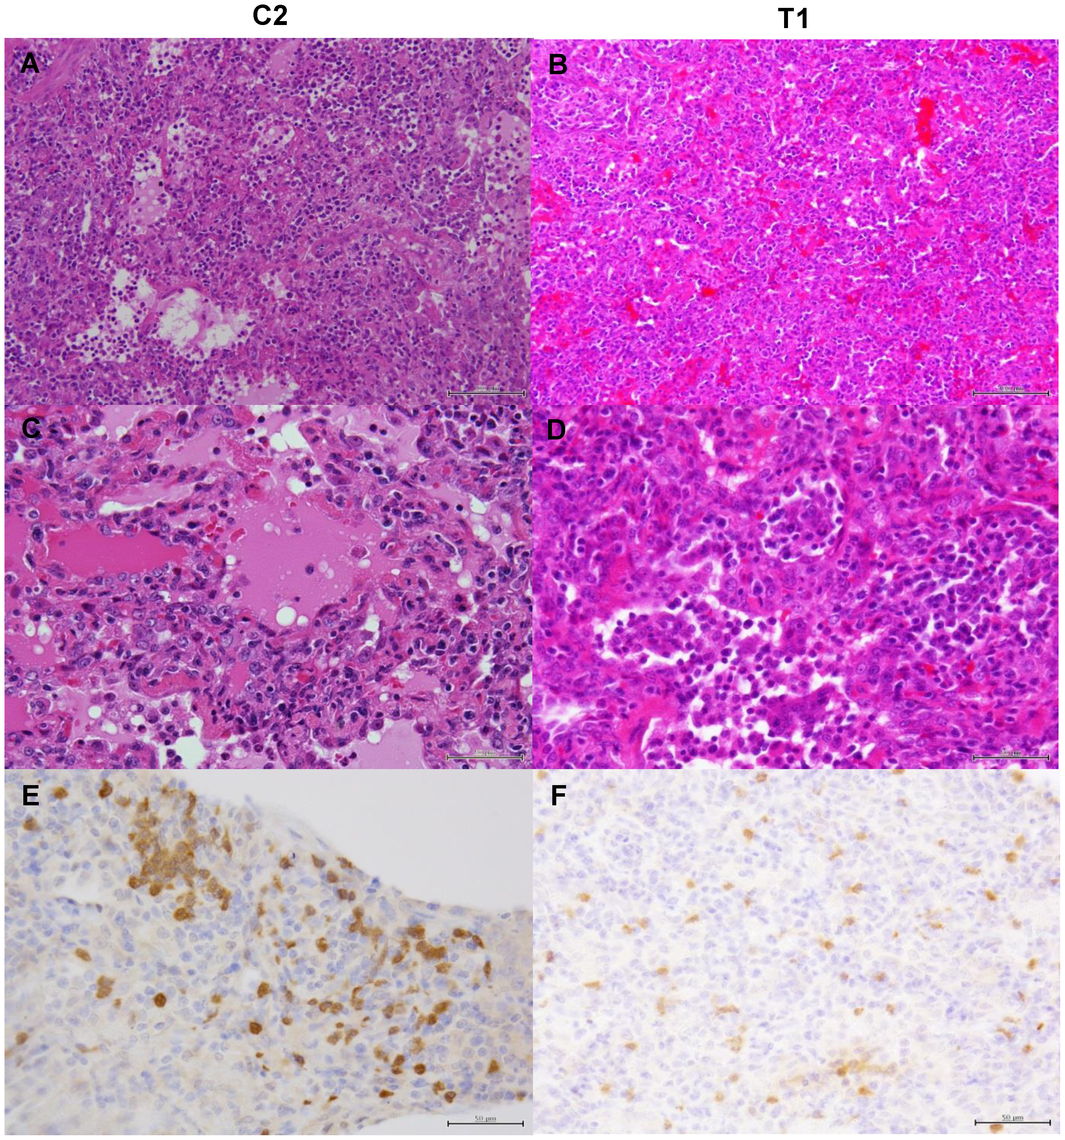 Histological analysis of pneumonia and distribution of viral antigens in immunocompetent macaques infected with VN3040.